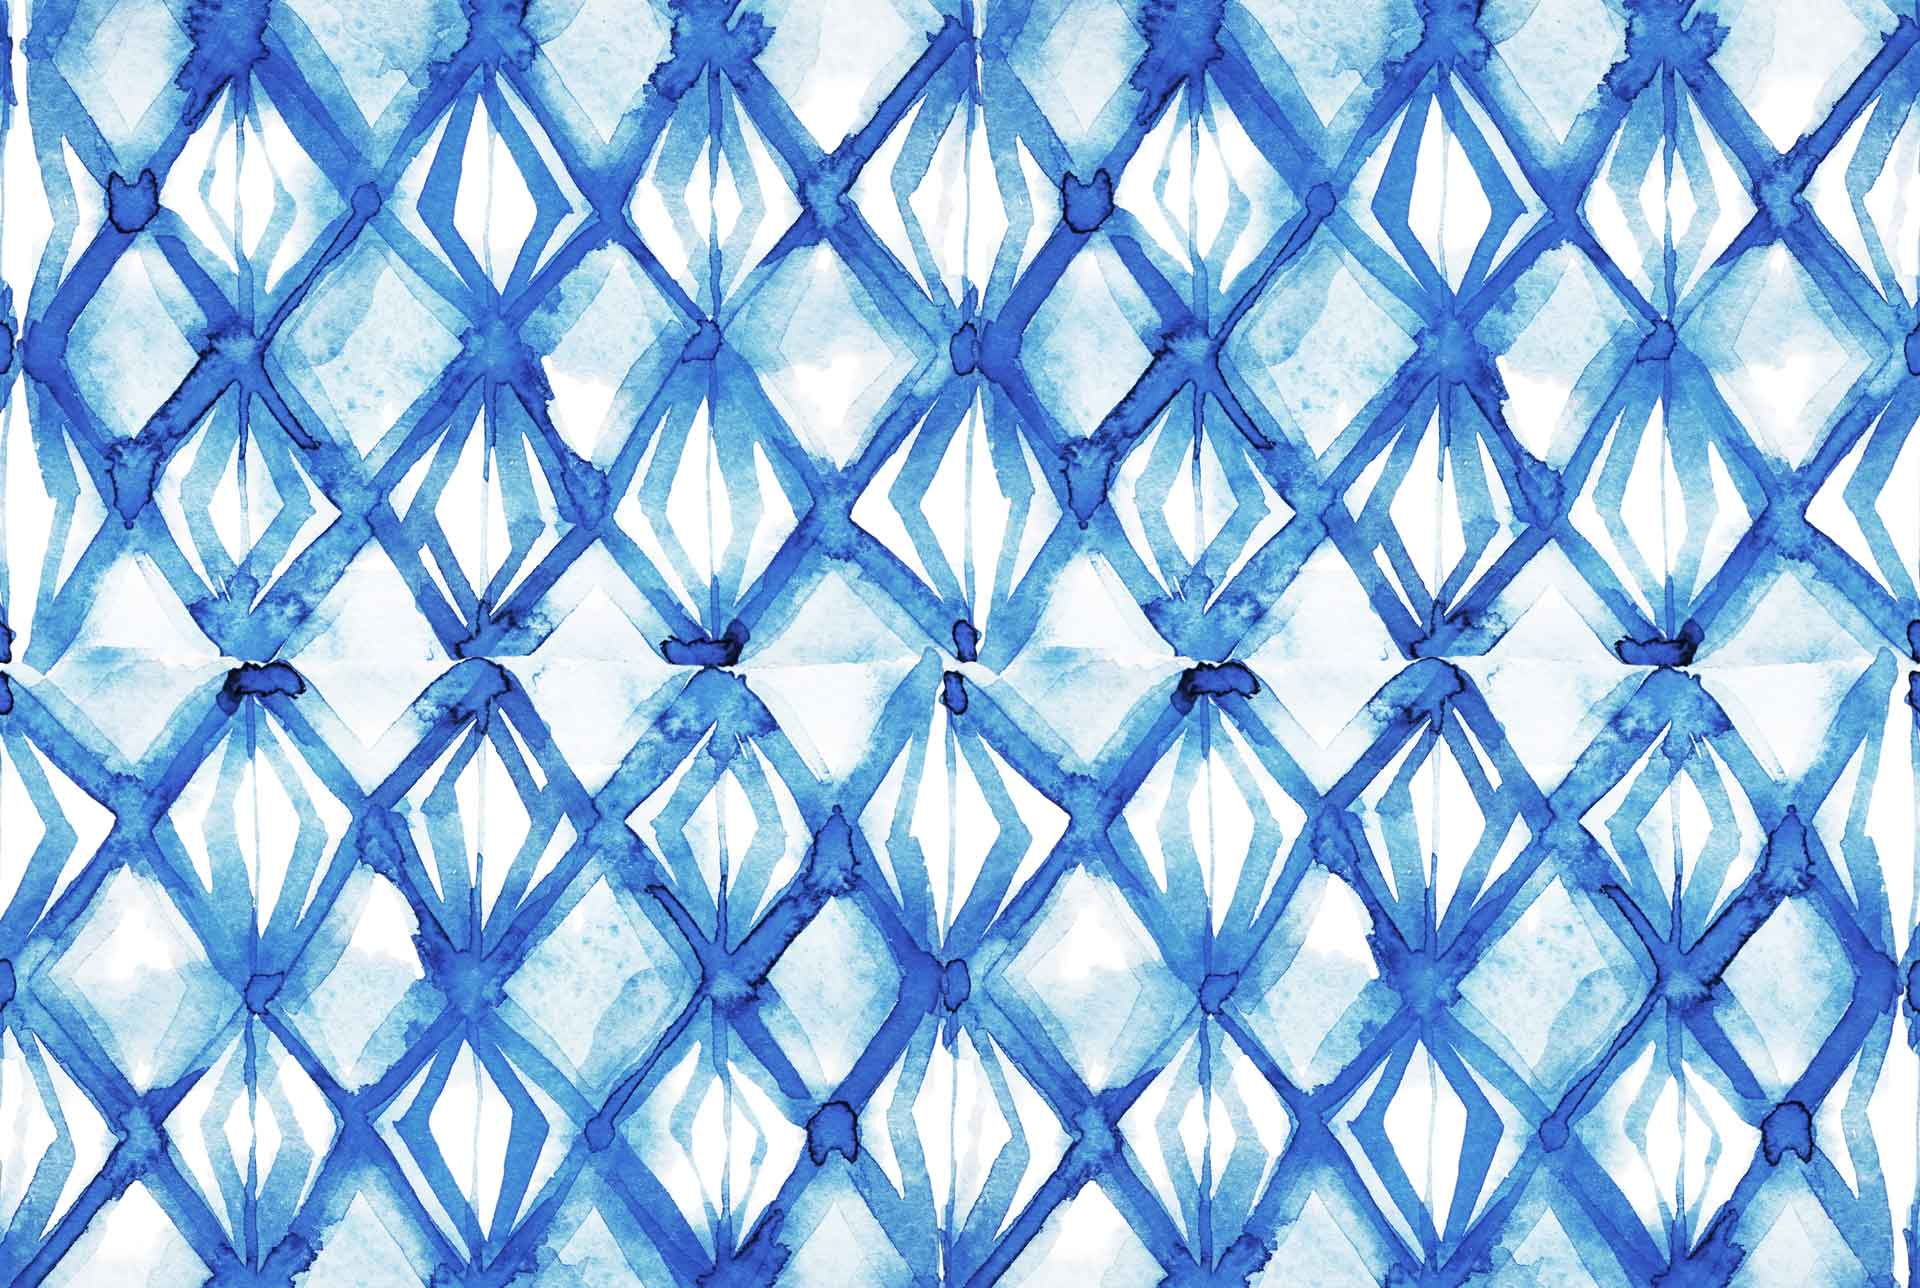 Pc Fall Wallpapers Free Download Diamond Pattern Backgrounds Pixelstalk Net